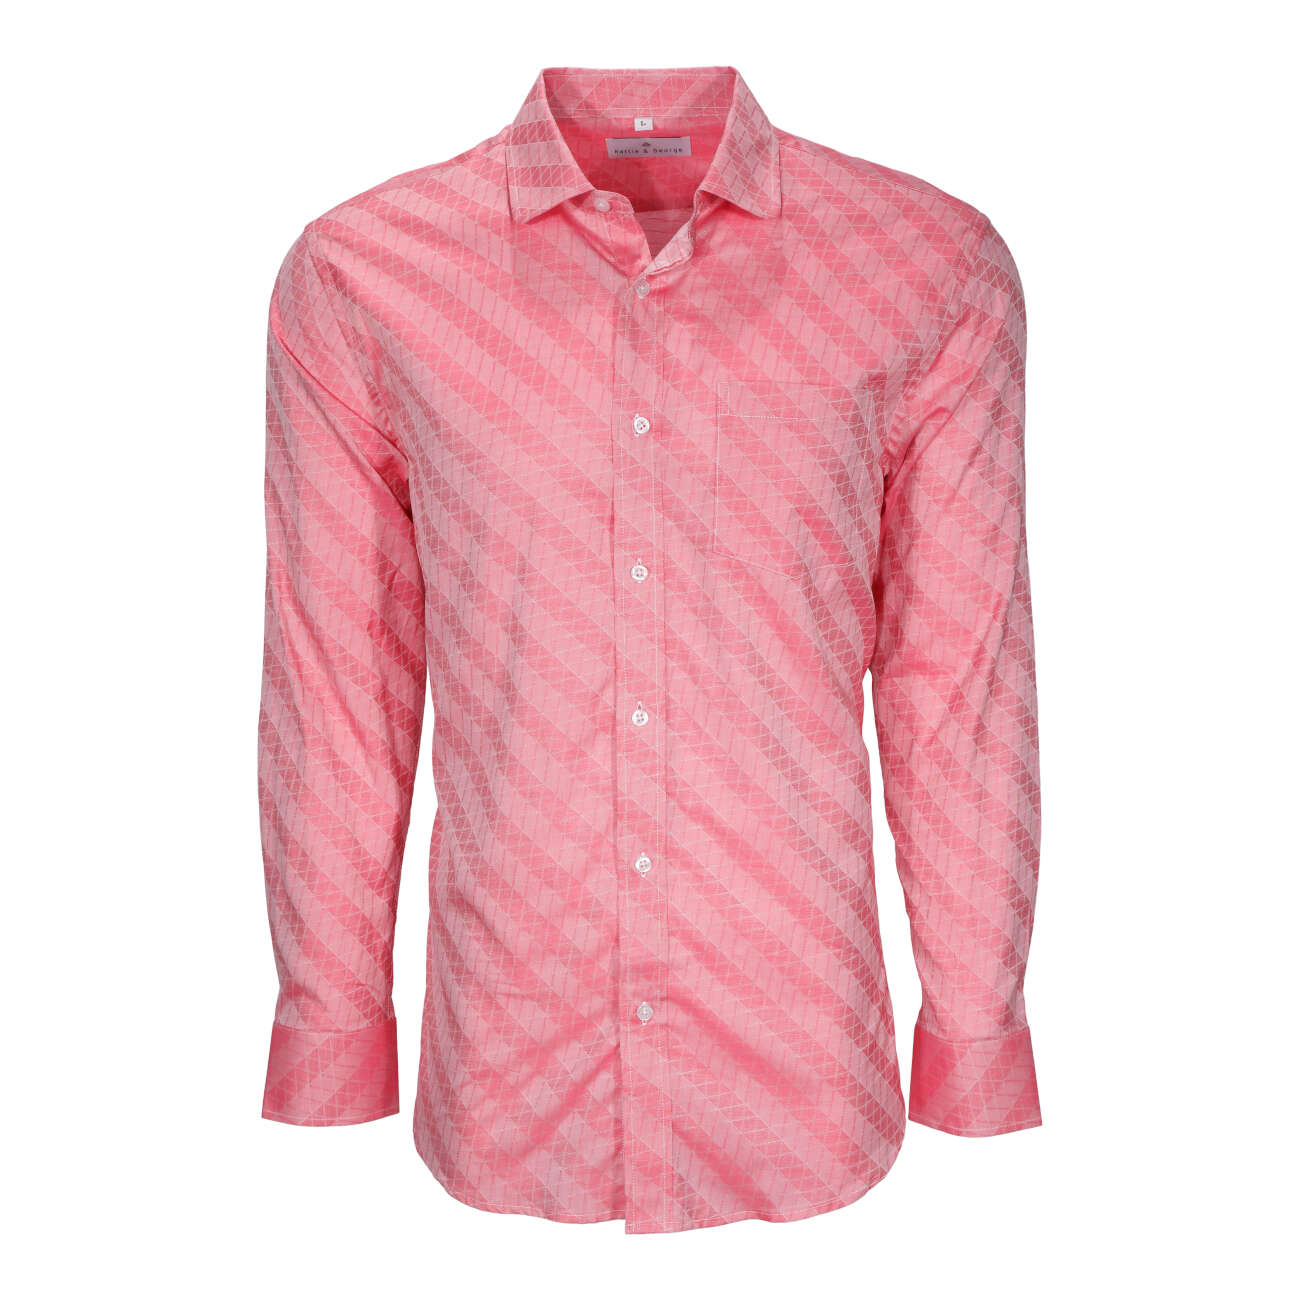 Salmon men's long sleeve dress shirt.